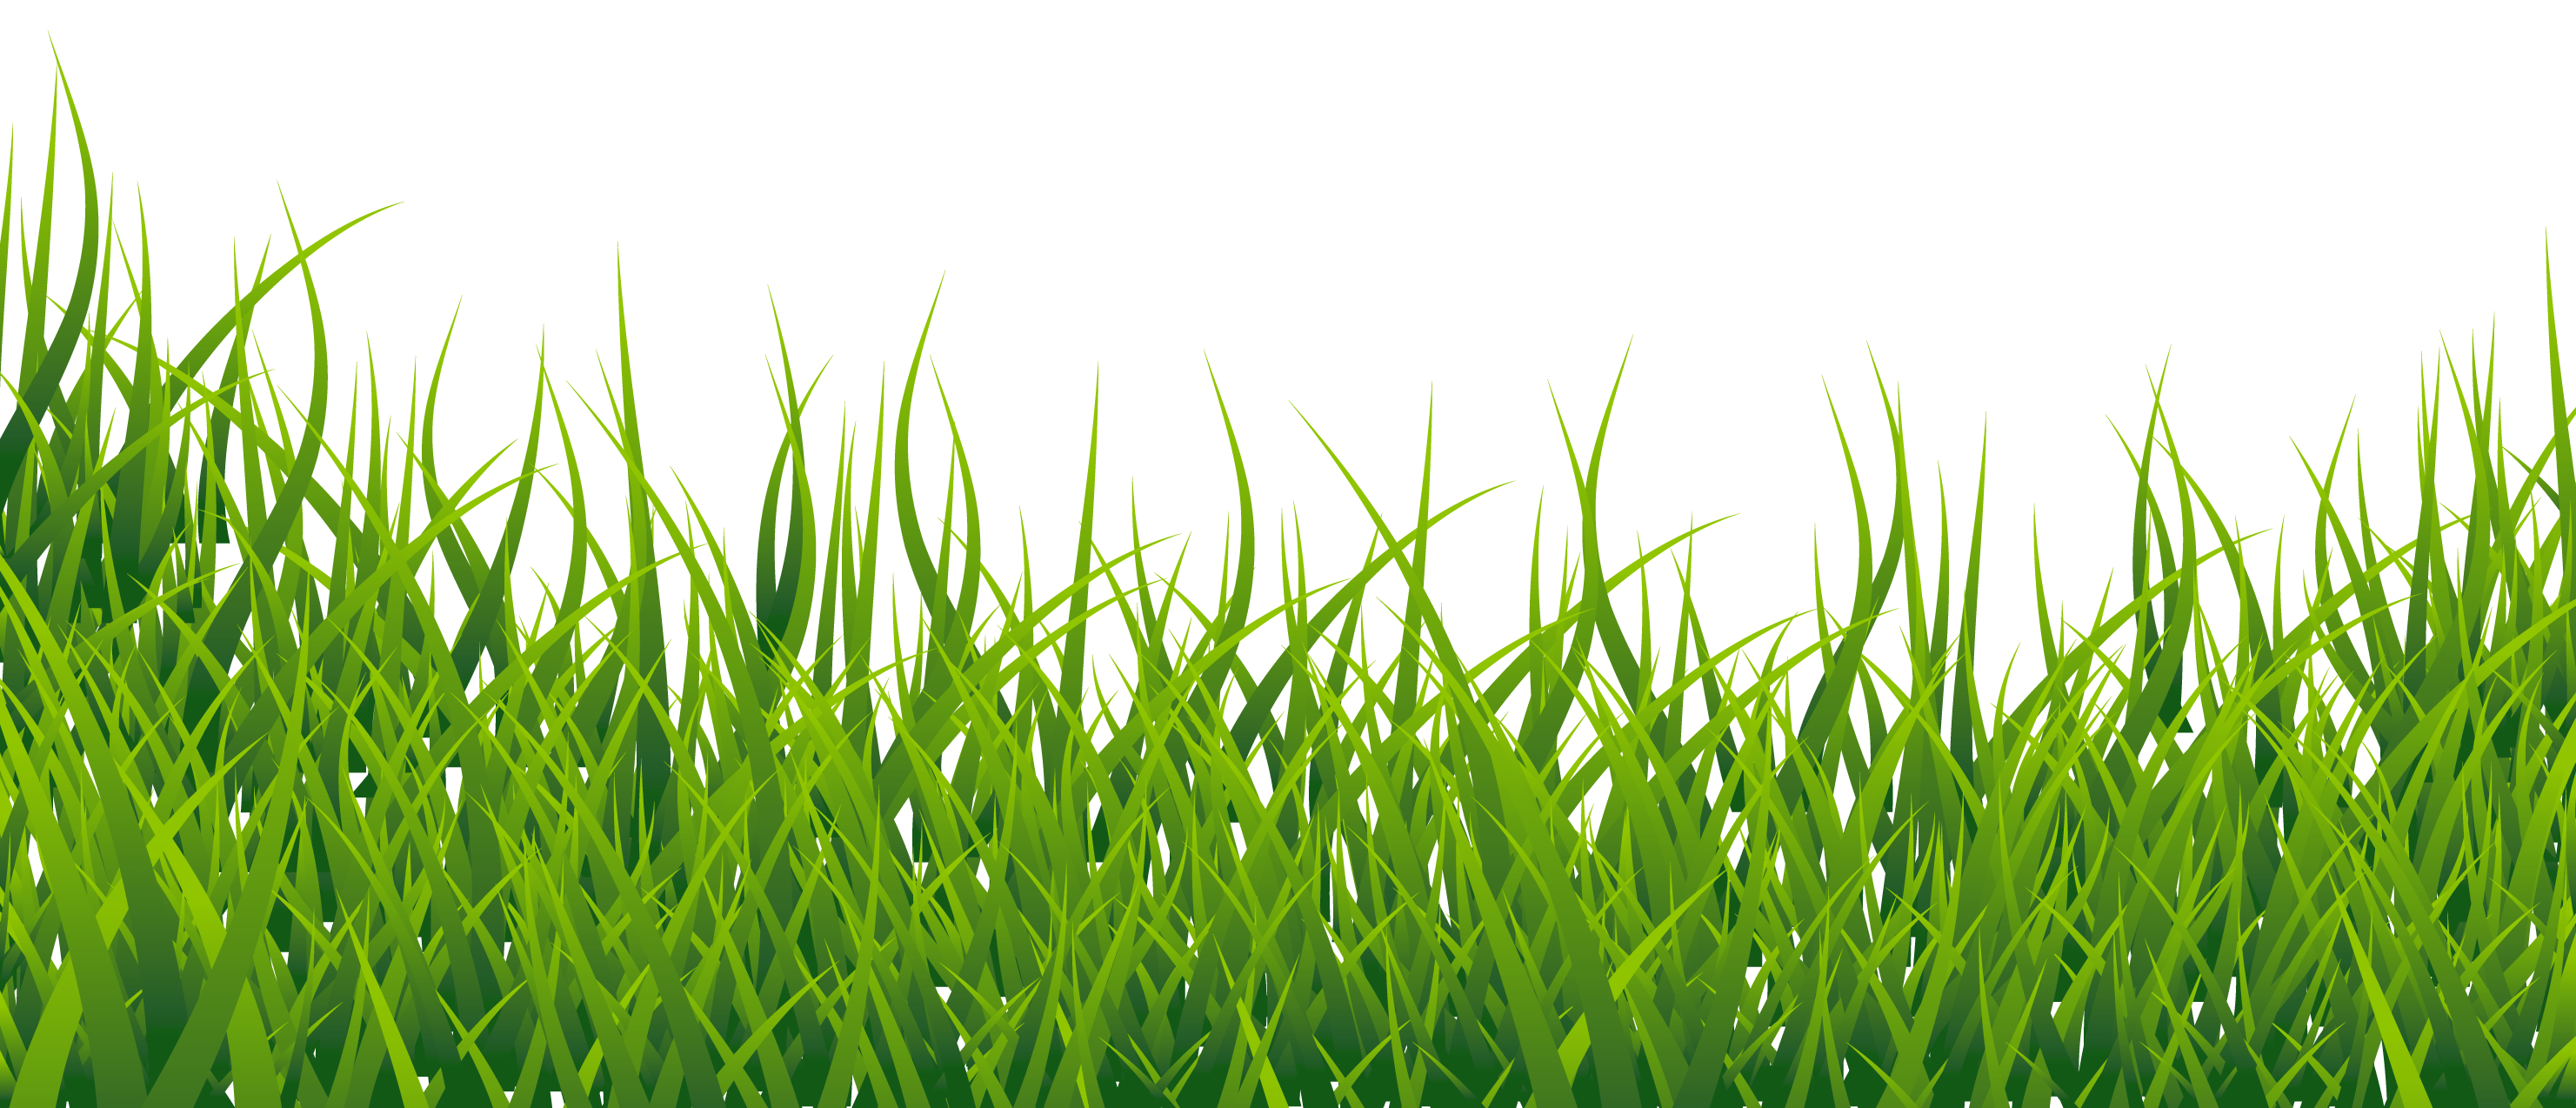 transparent Pin by kushal agarwal. Lawn care clipart high grass.